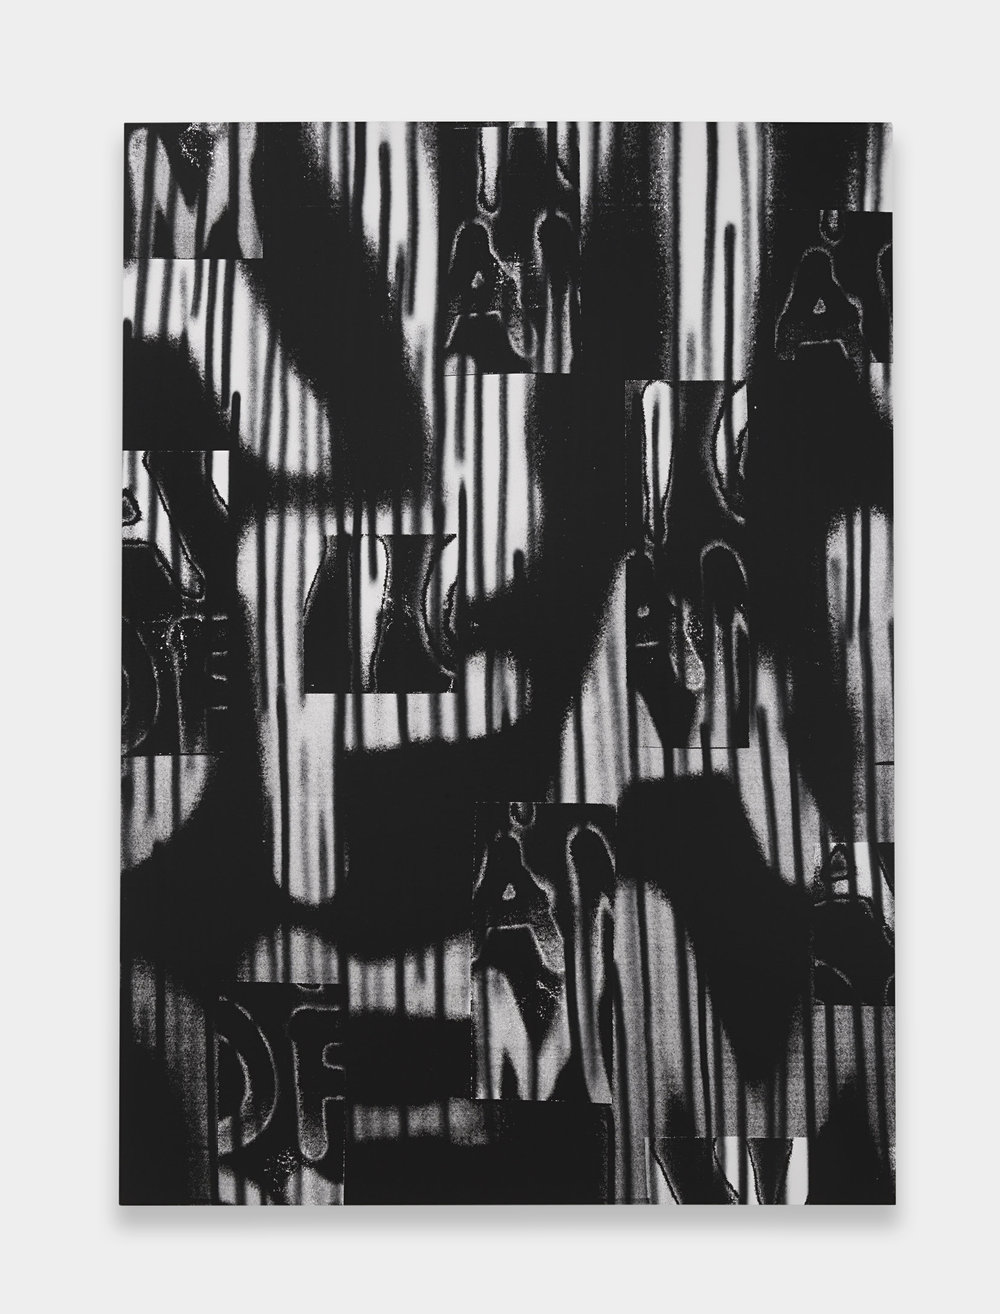 Adam Pendleton  Untitled (A Victim of American Democracy)  2017 Silkscreen ink and spray paint on canvas 84h x 60w in